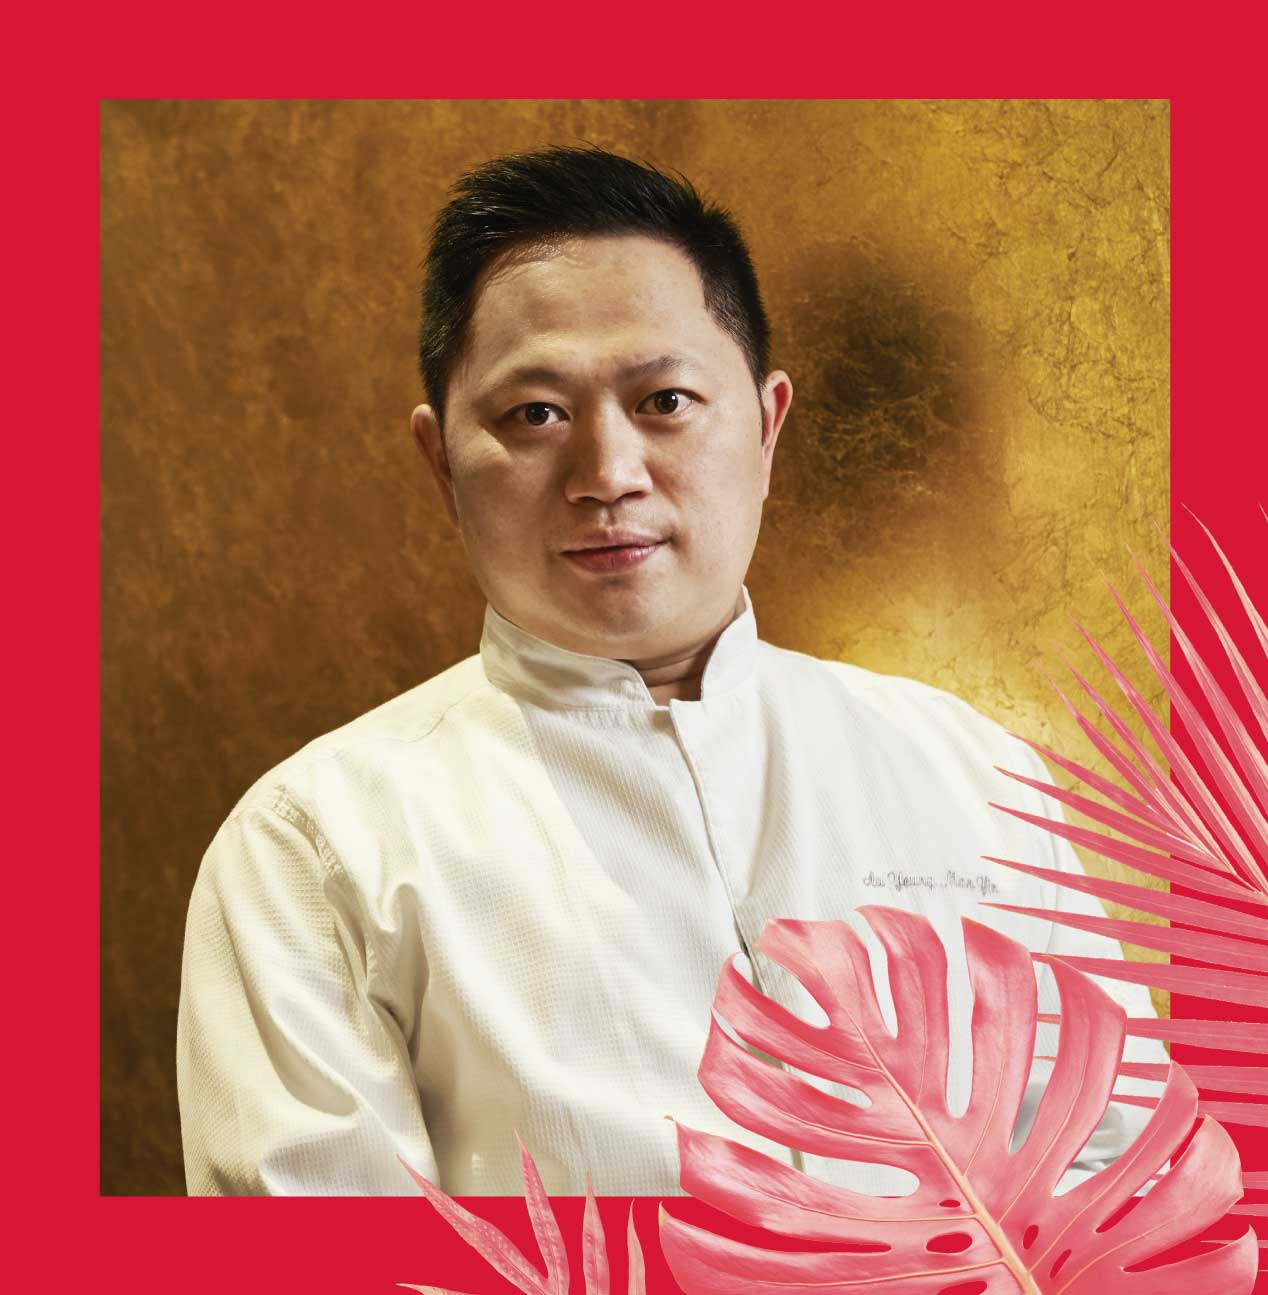 Chef-Photo-Frame-02-Kelvin Au Yeung.jpg